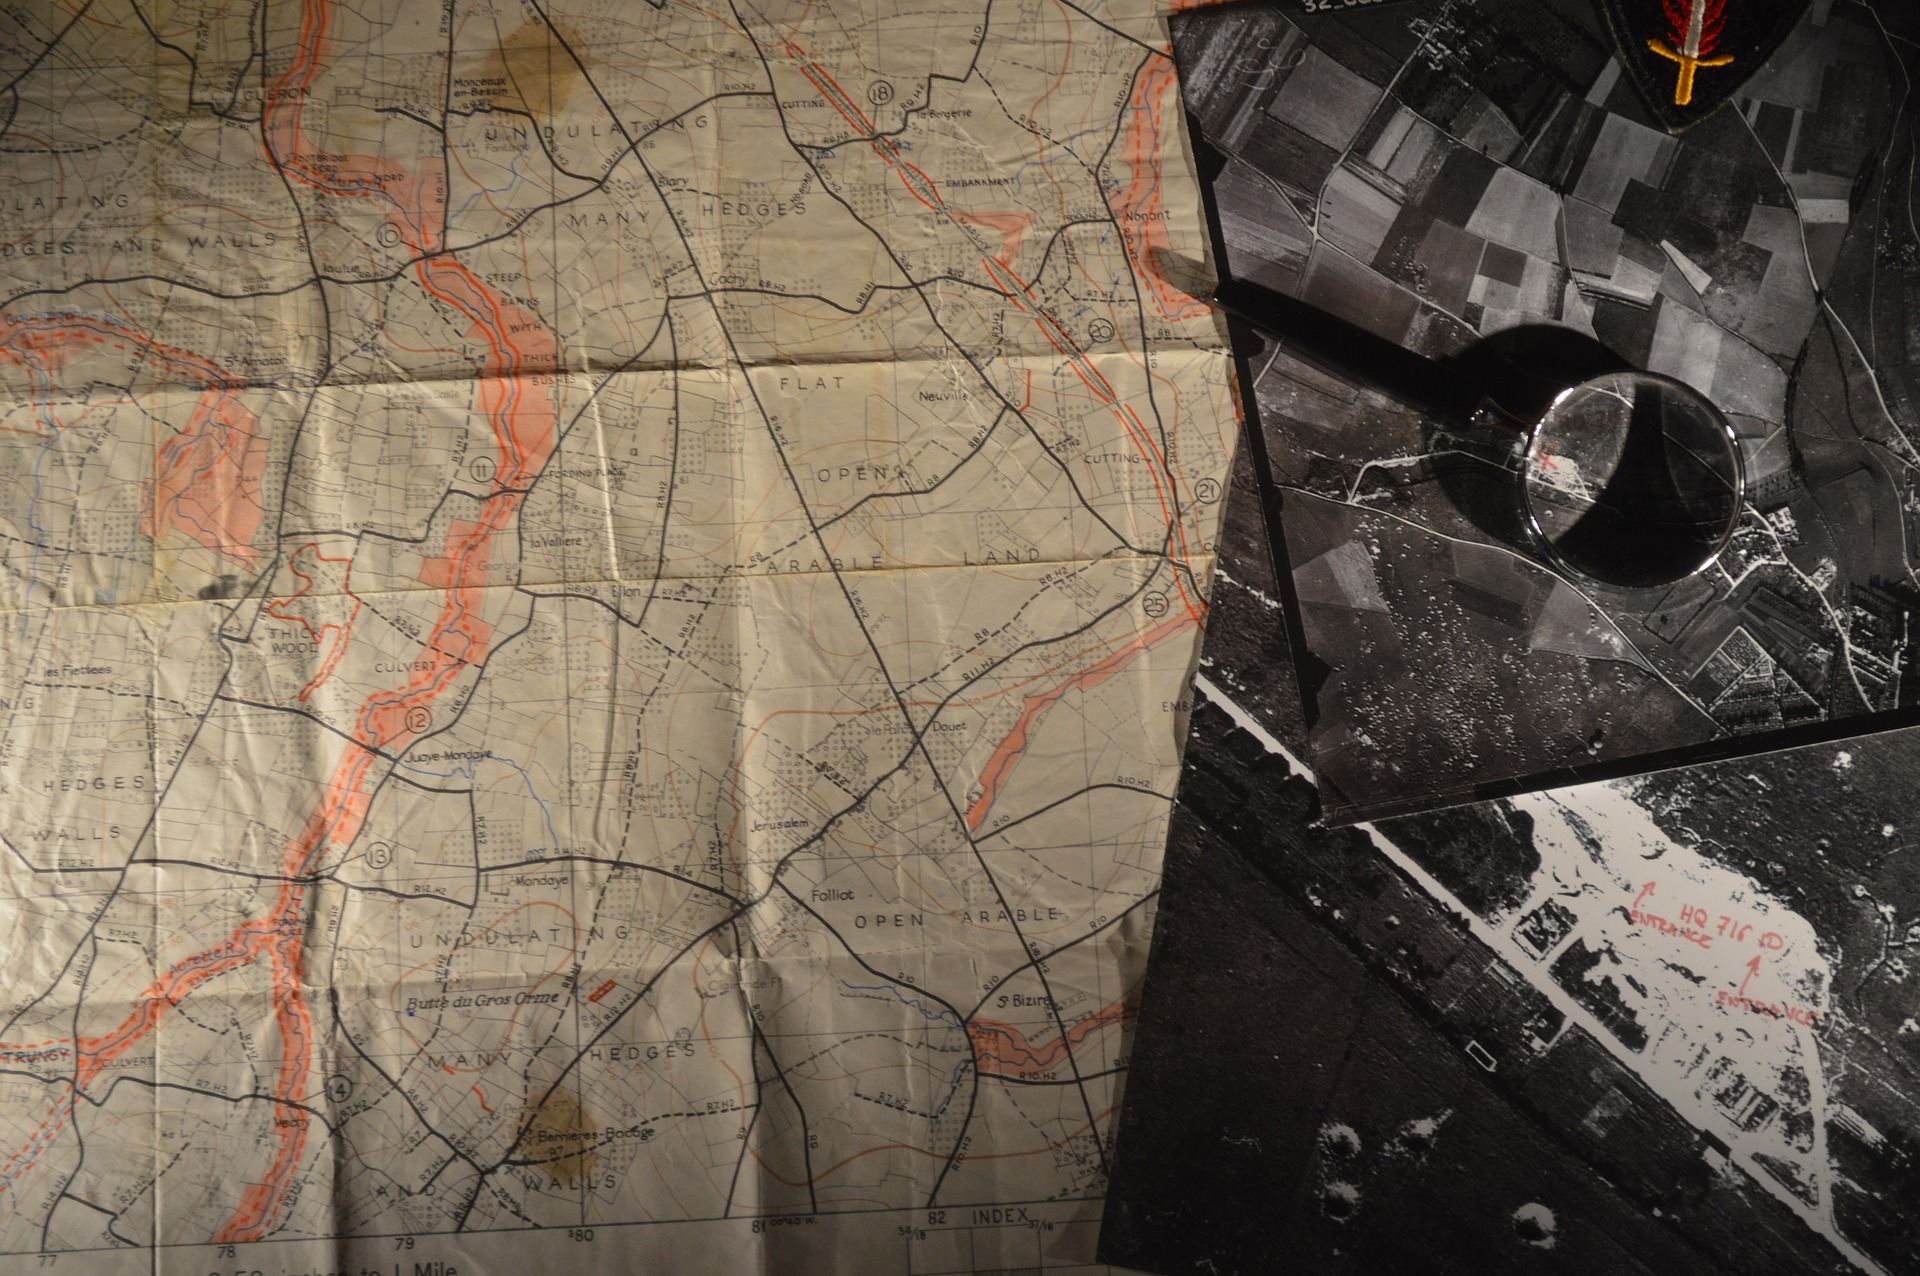 Image of a WWII map alongside aerial black and white photographs of the landscape